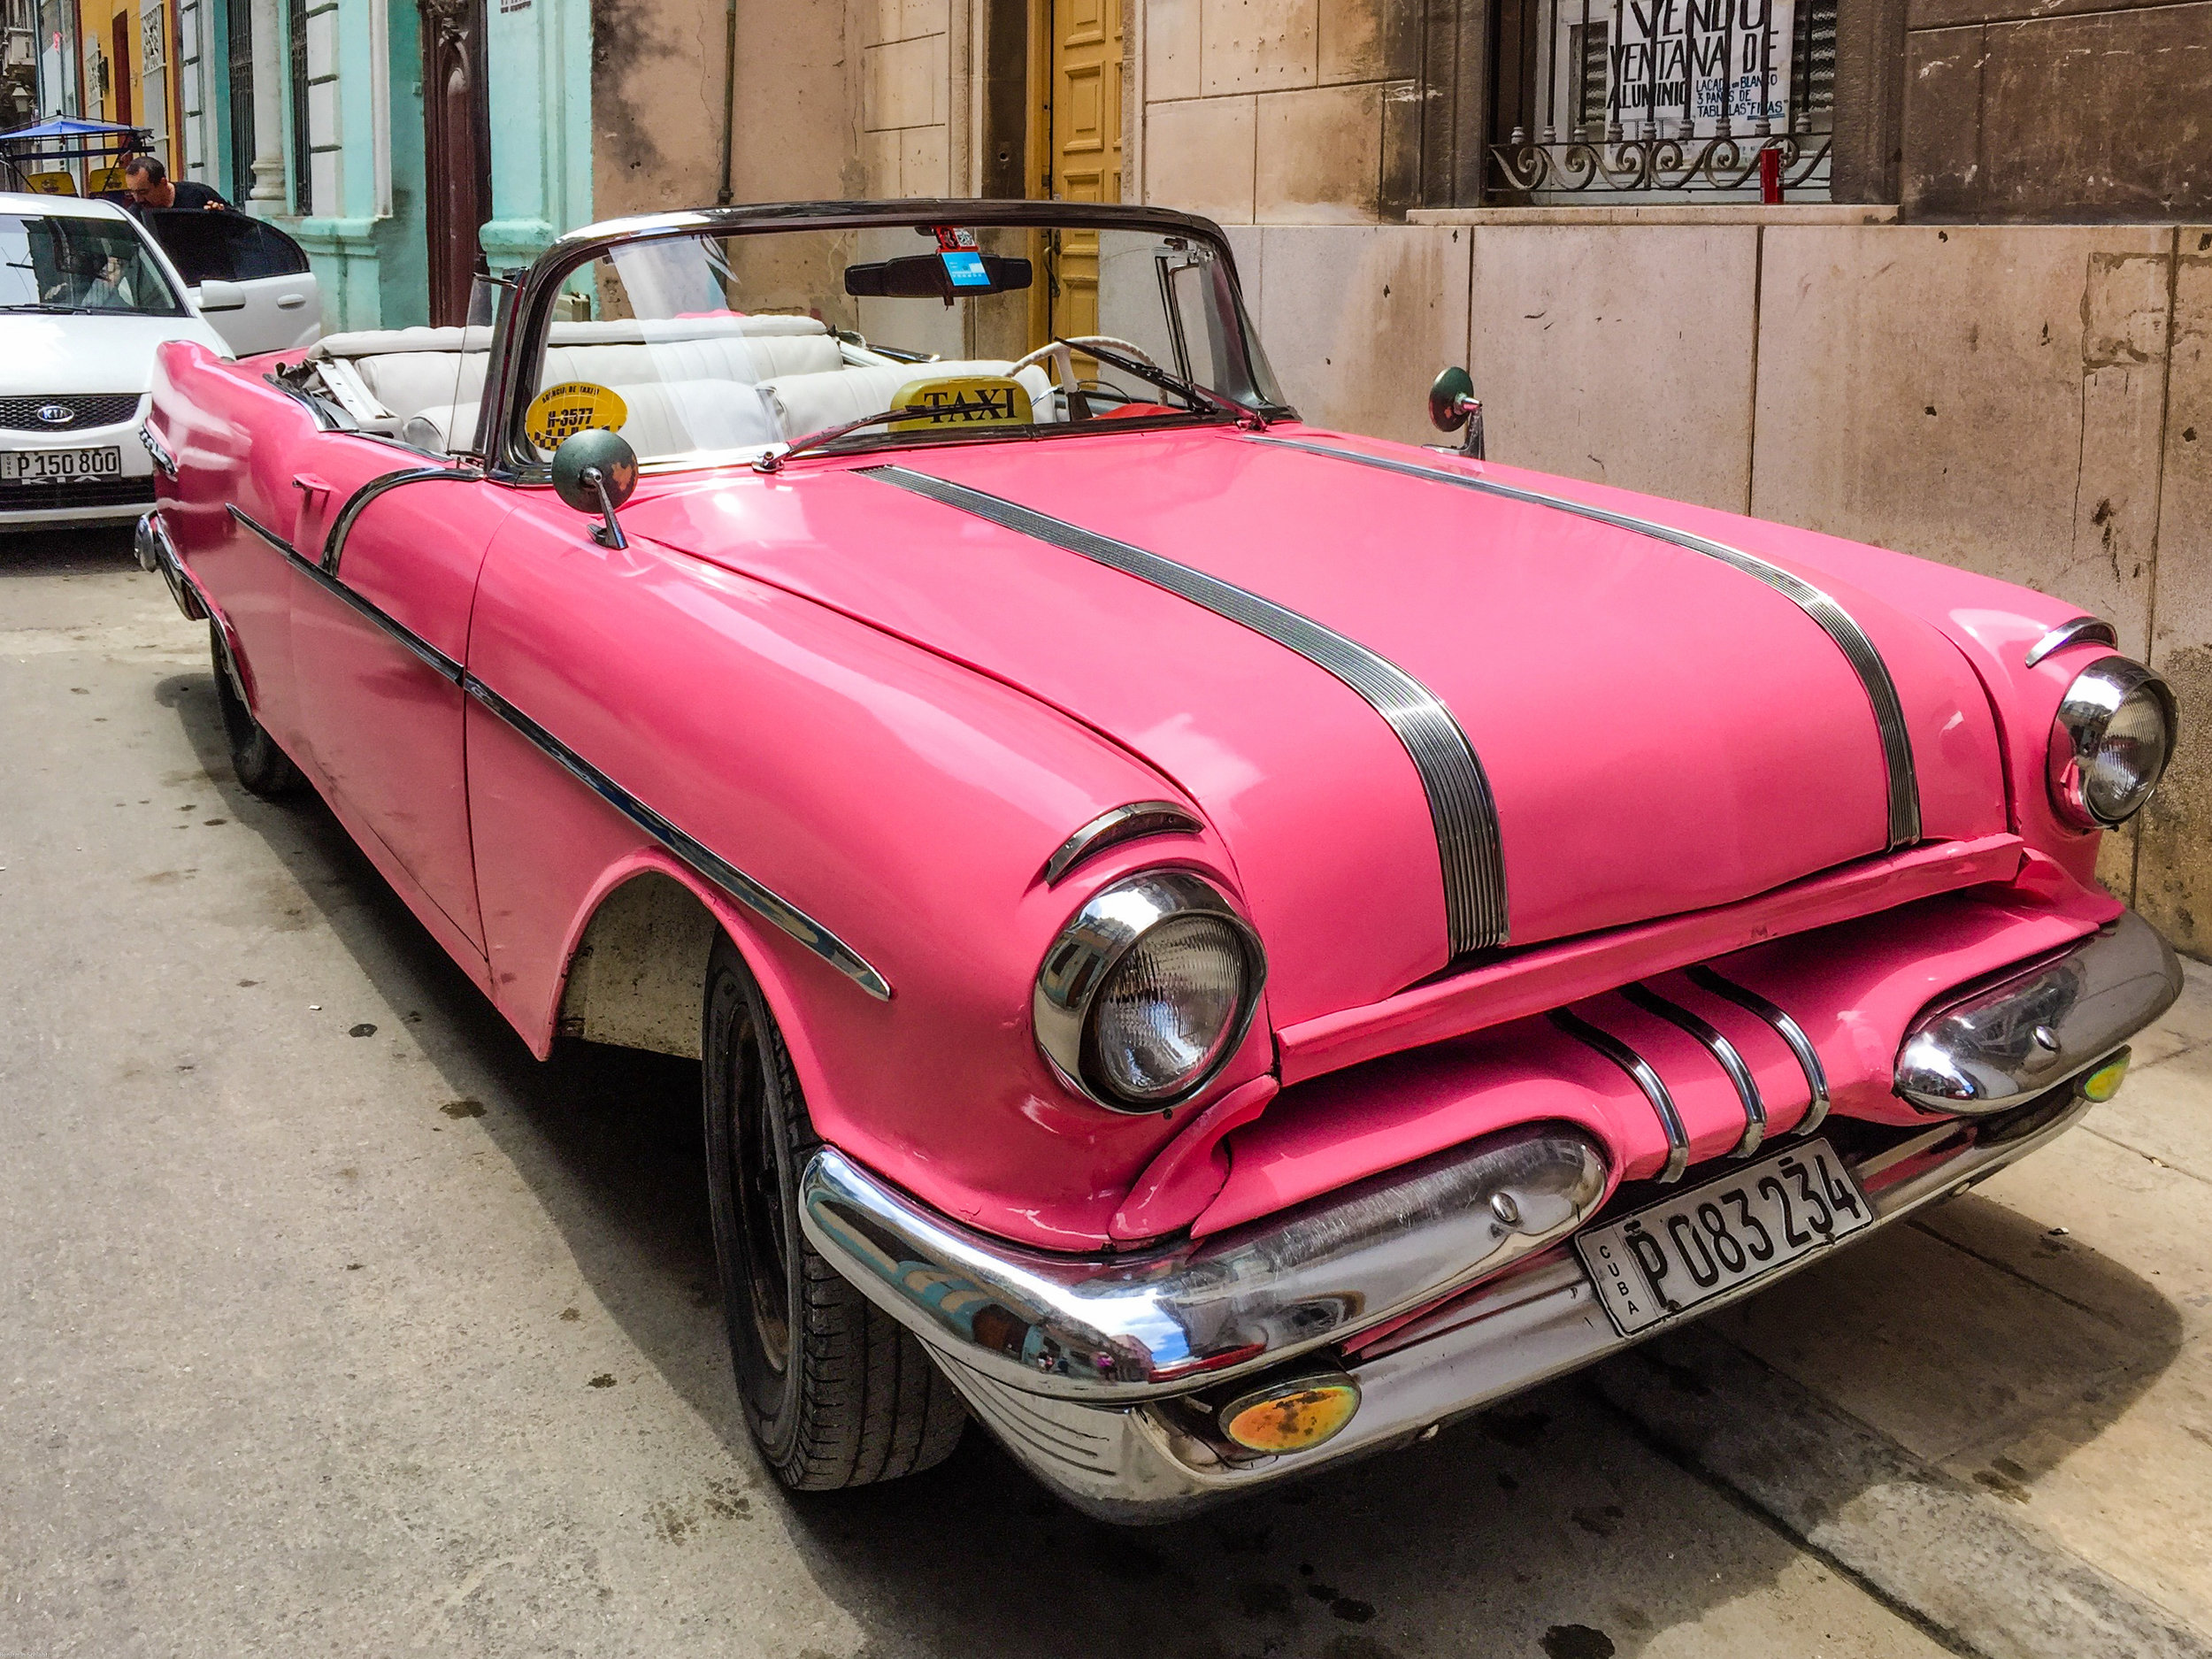 One of many classic pink cars in Havana